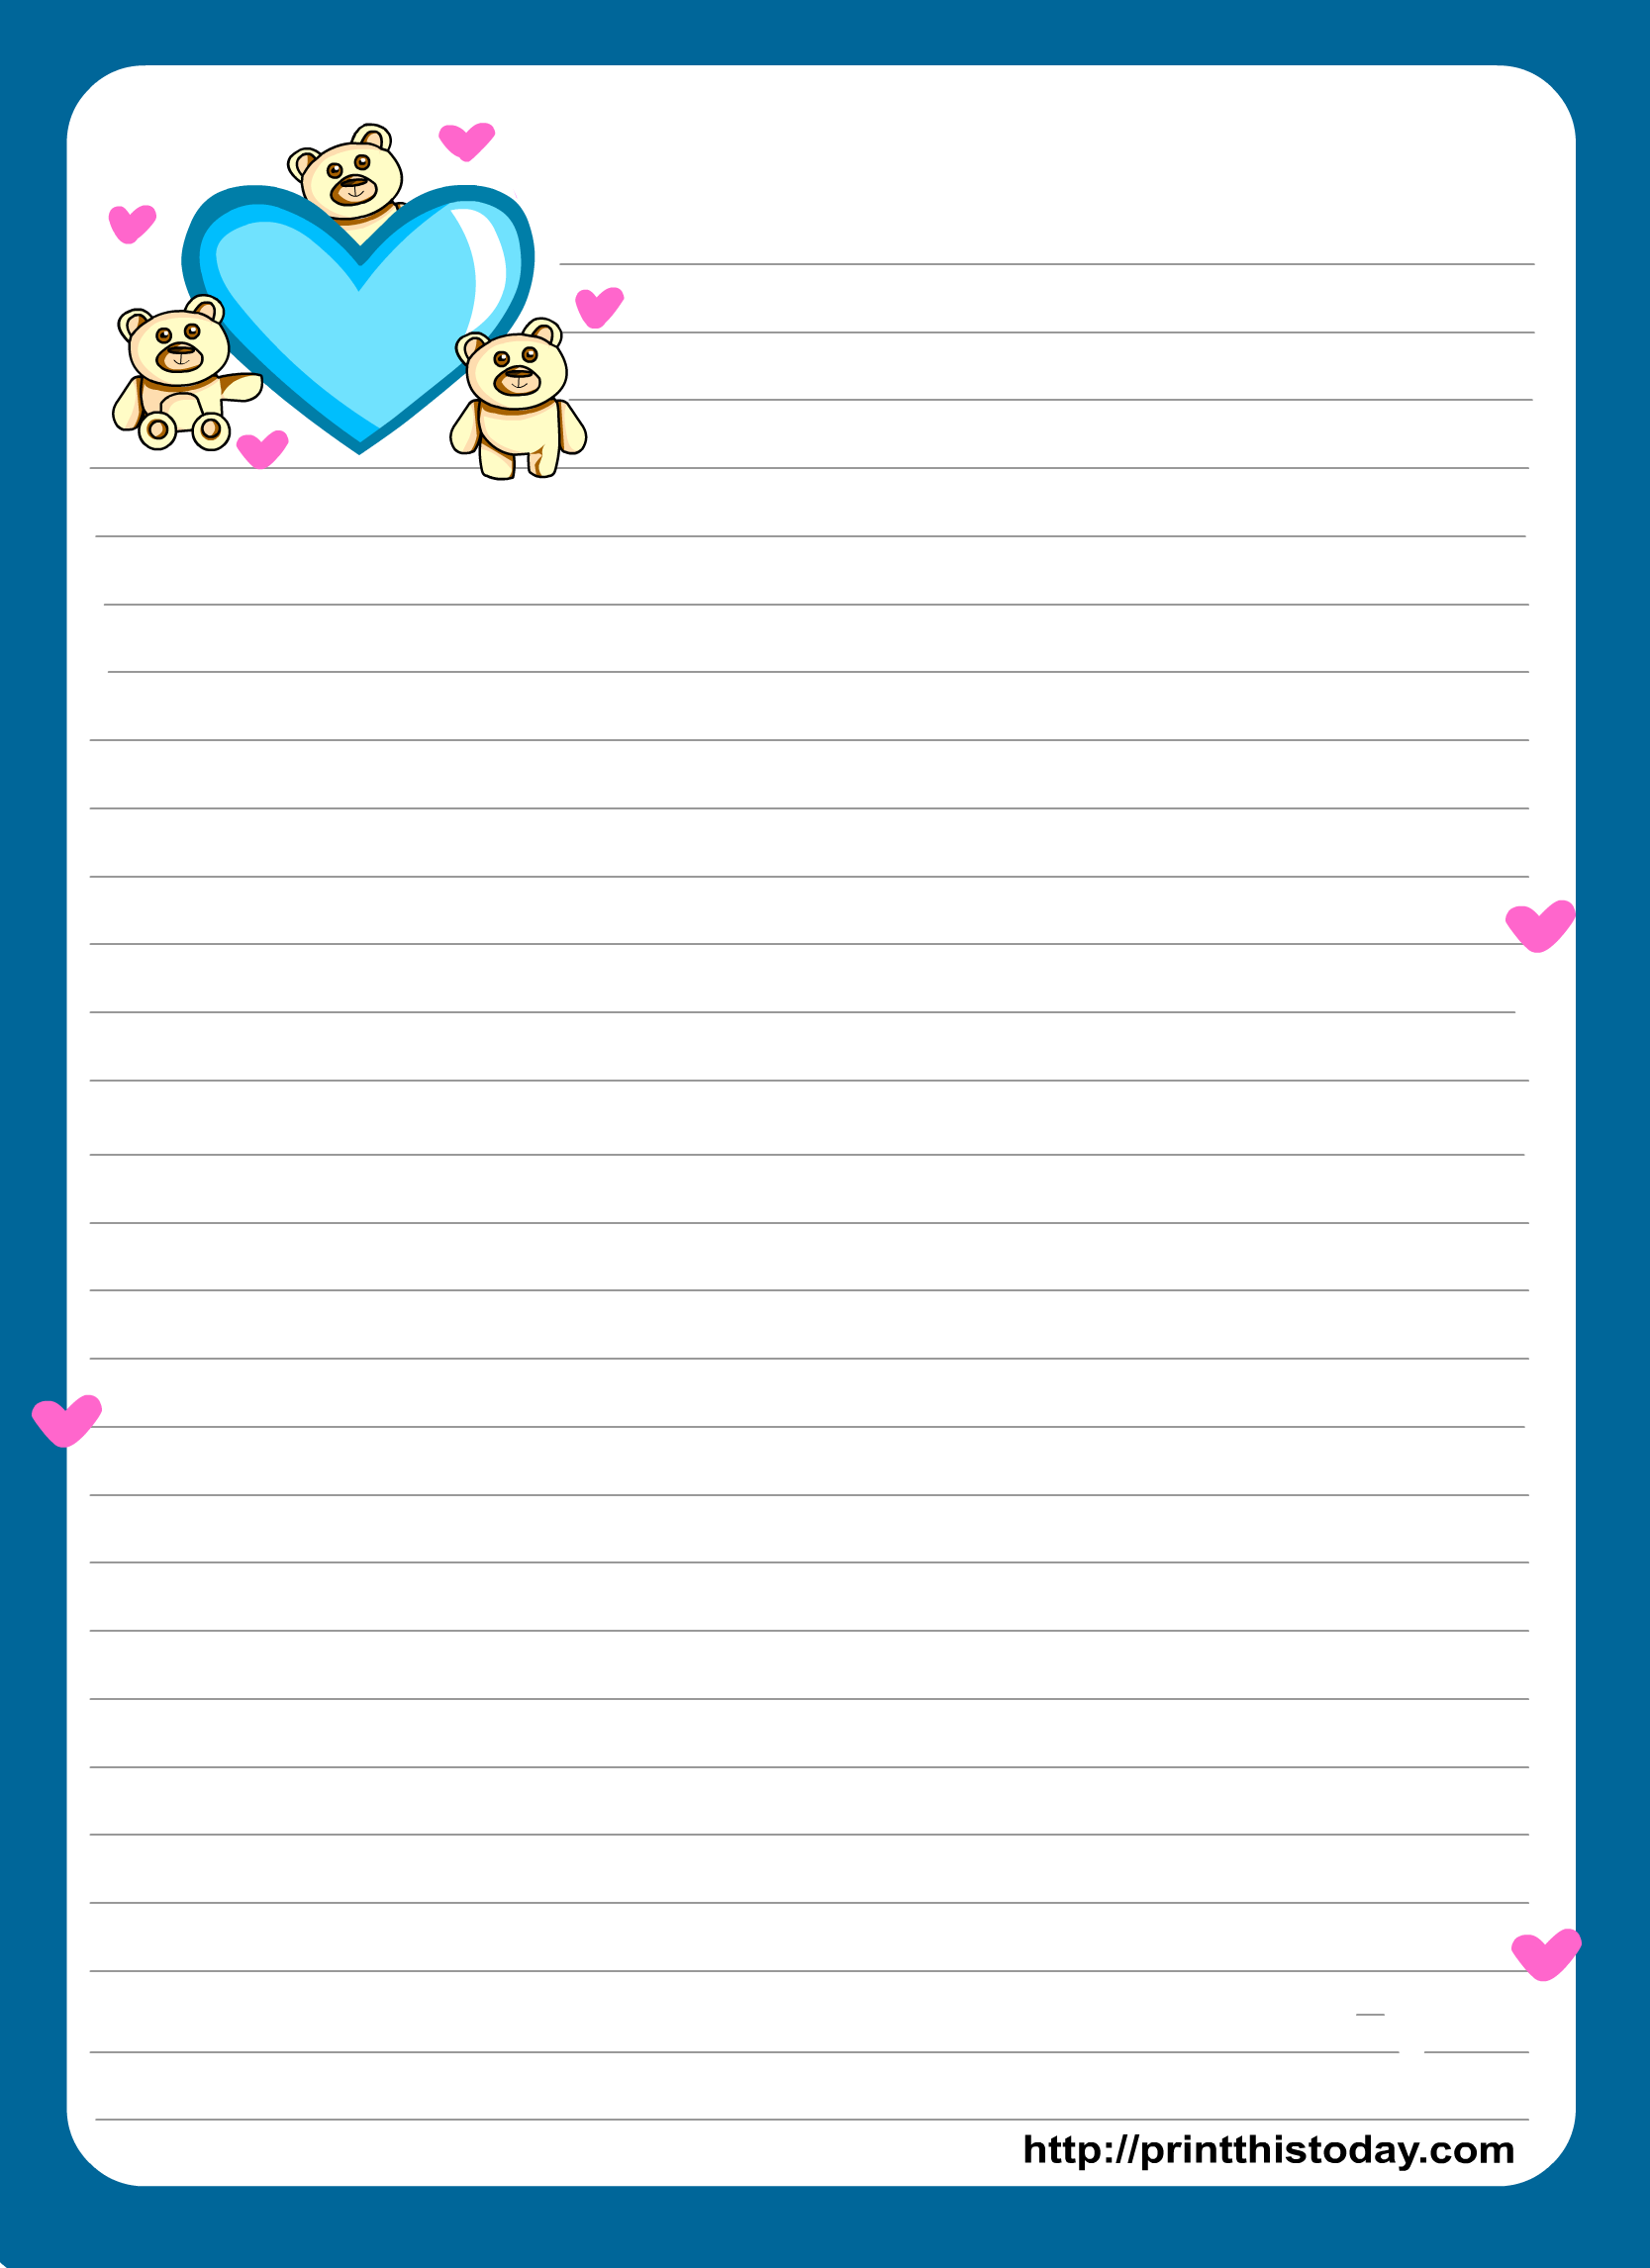 Free Printable Love Stationery Paper